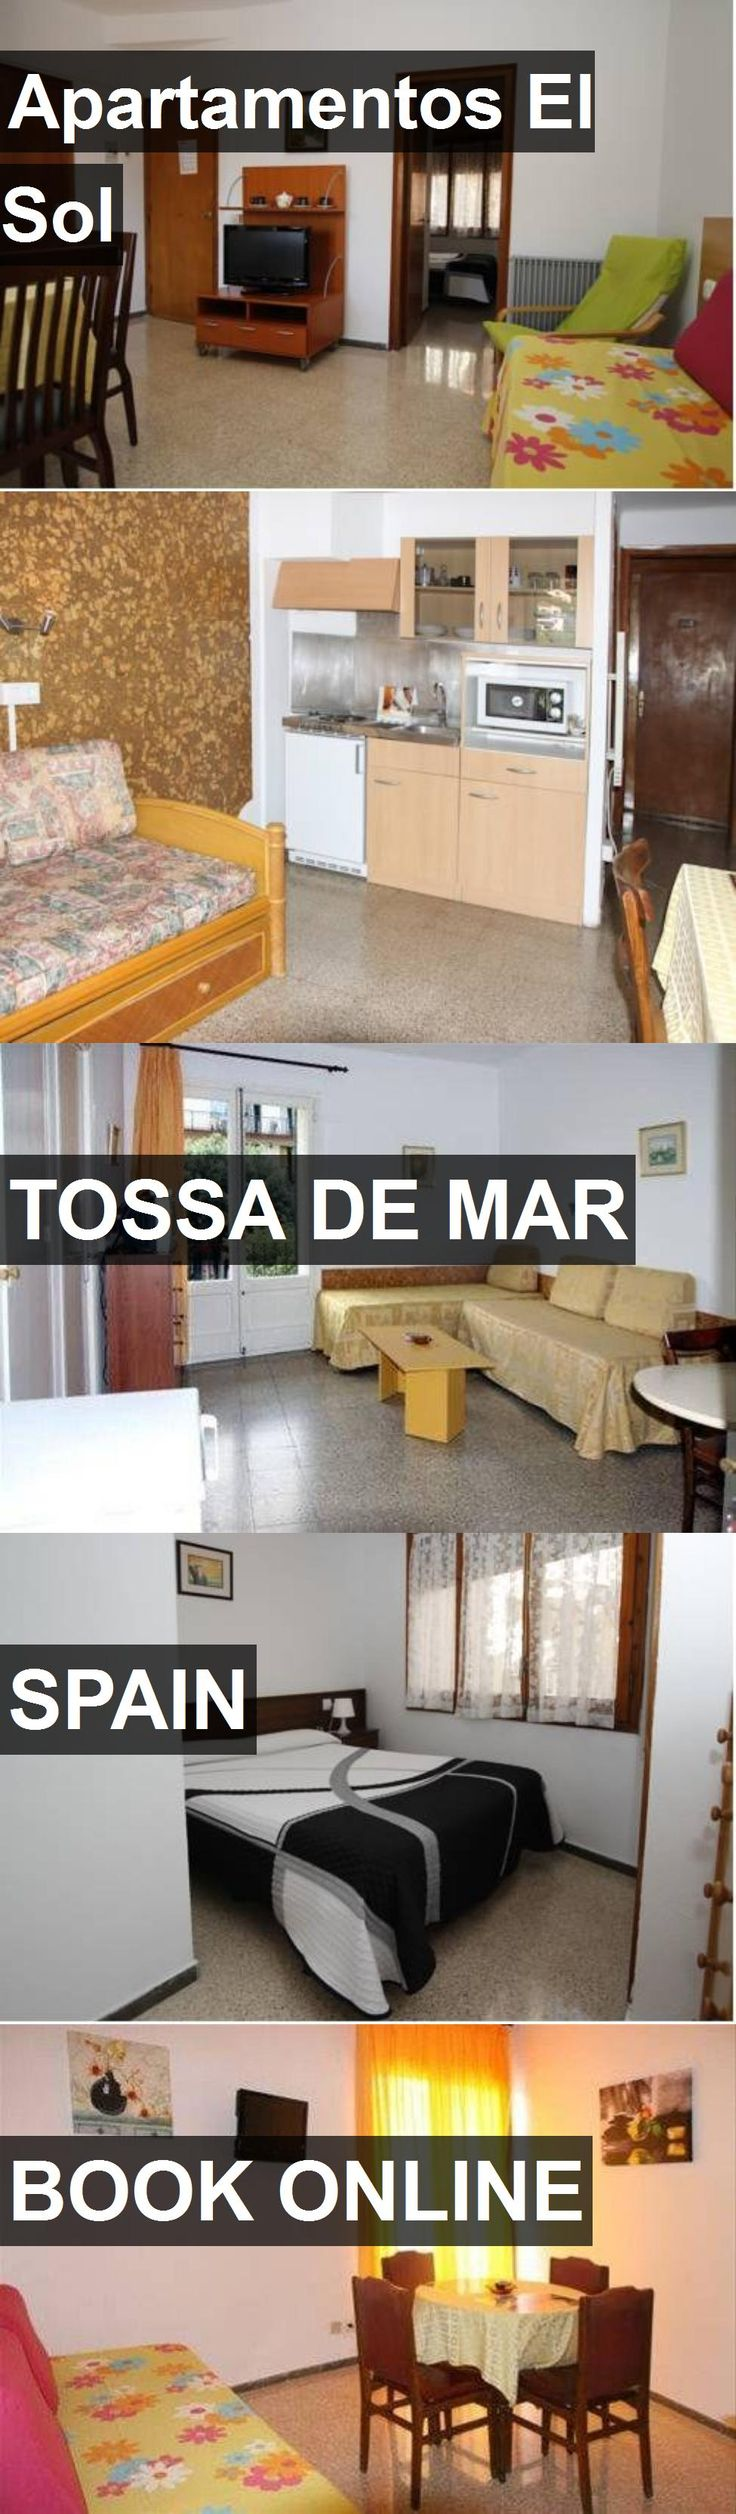 Hotel Apartamentos El Sol in Tossa de Mar, Spain. For more information, photos, reviews and best prices please follow the link. #Spain #TossadeMar #travel #vacation #hotel